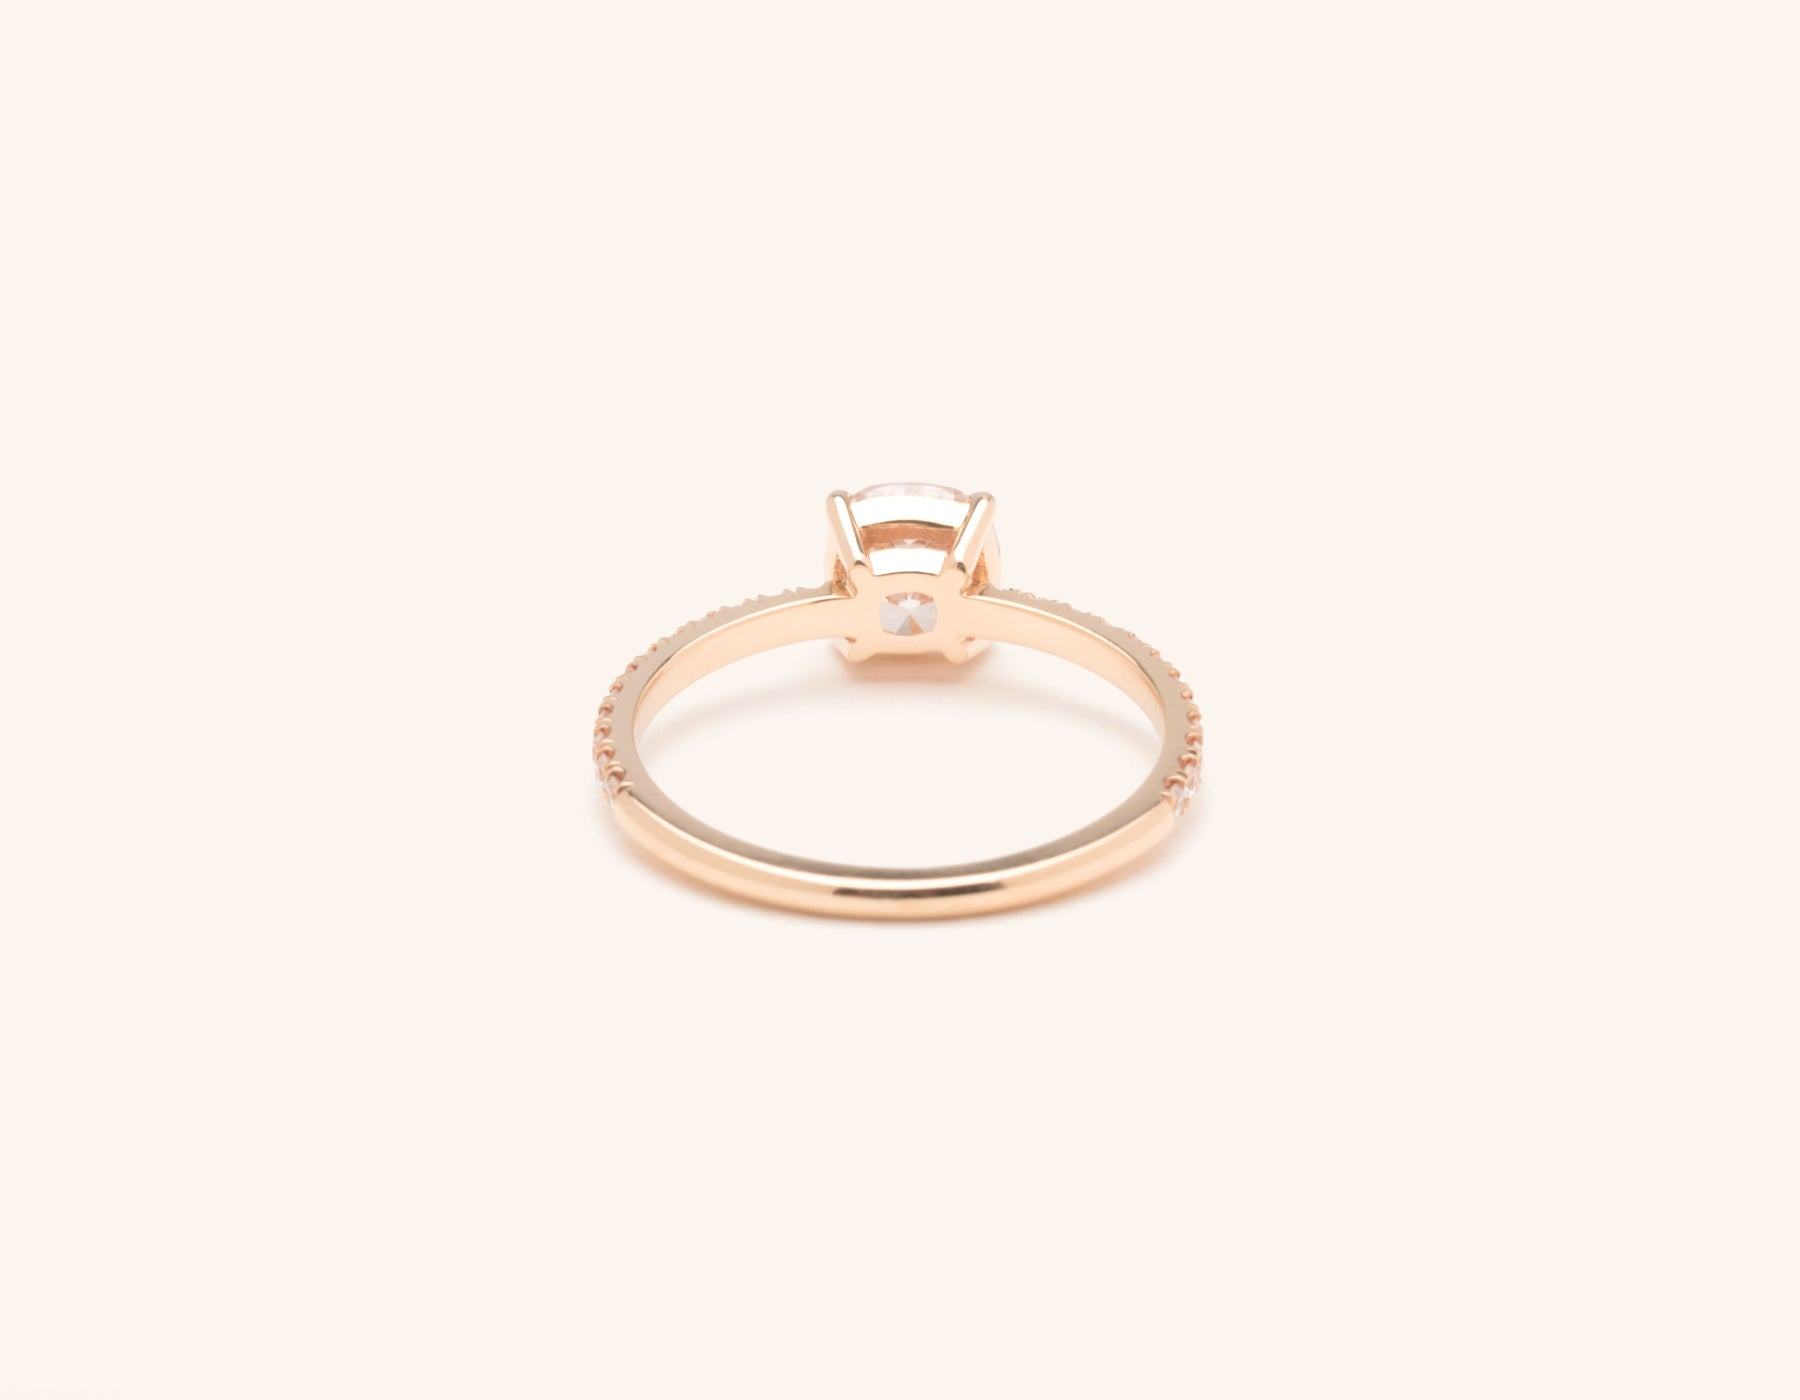 Vrai & Oro 18k solid rose gold Diamond engagement ring The Cushion pave simple classic band